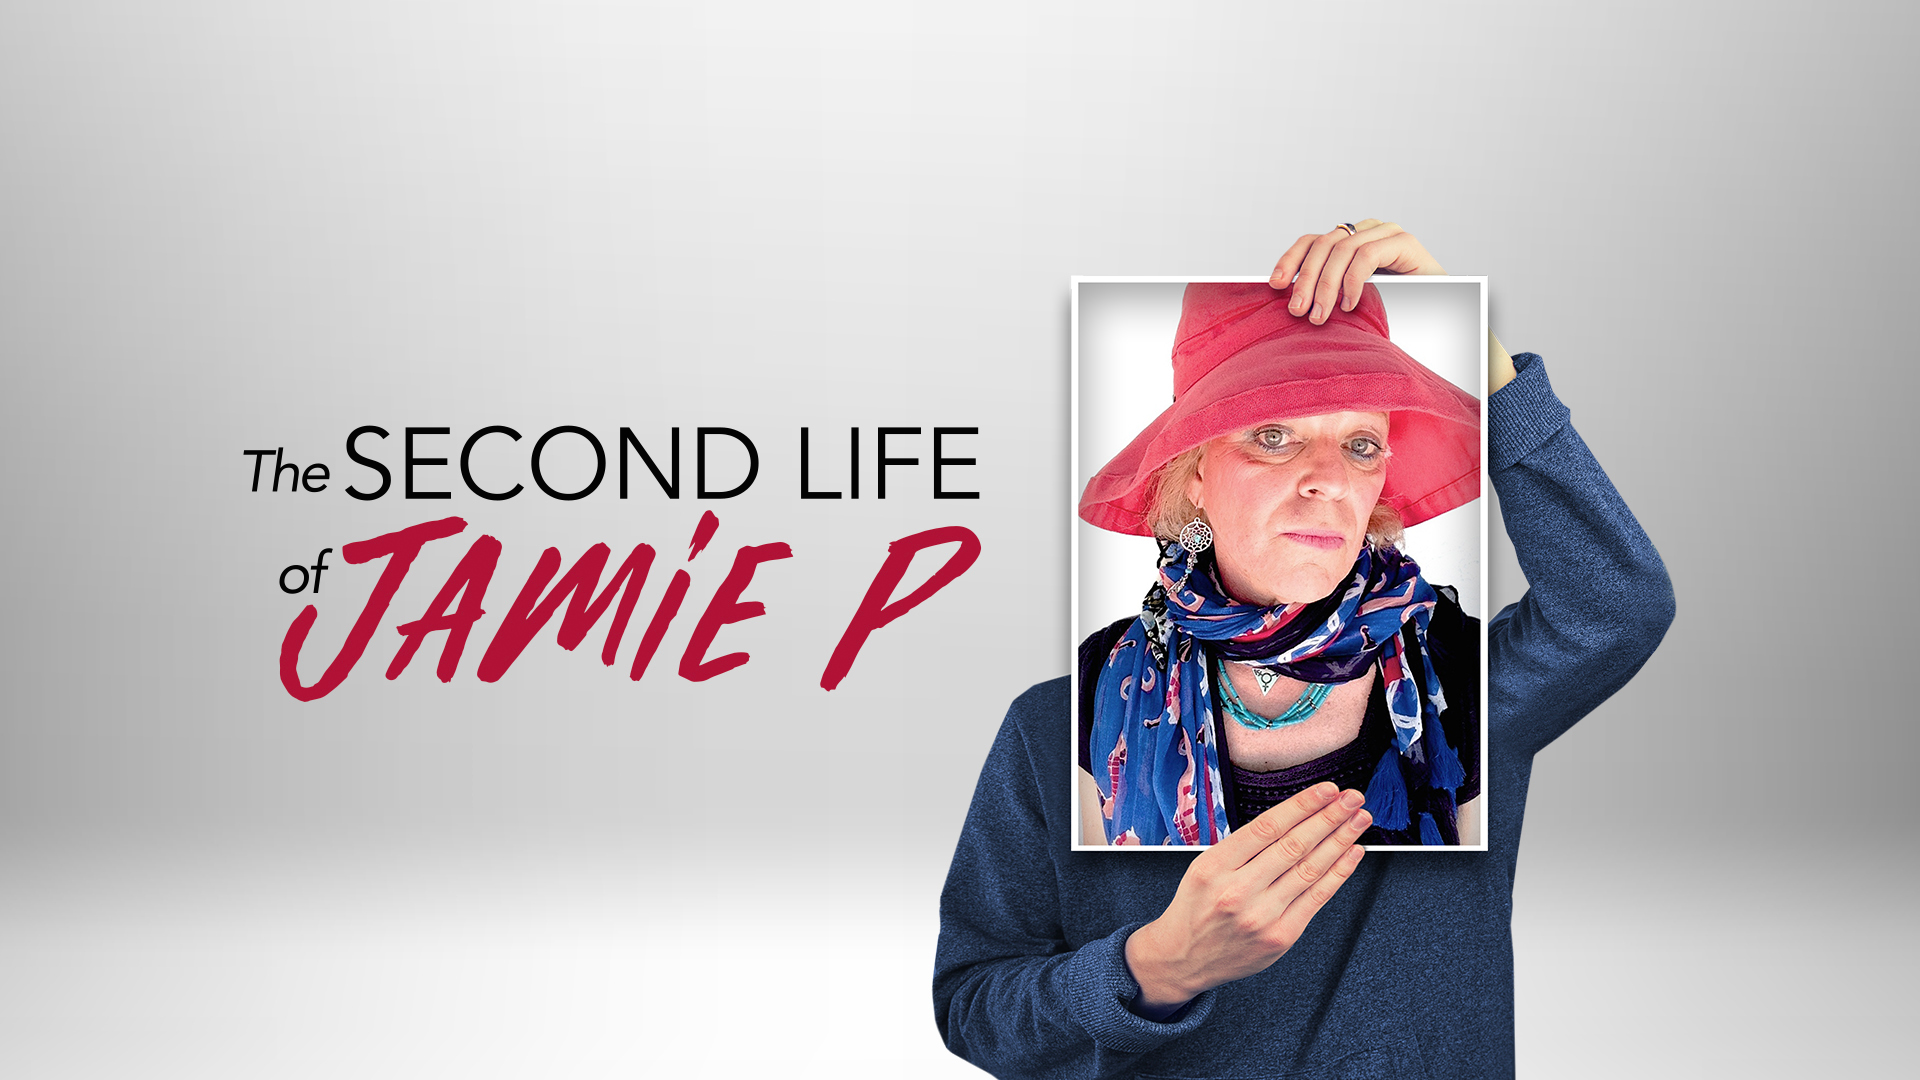 The Second Life of Jamie P